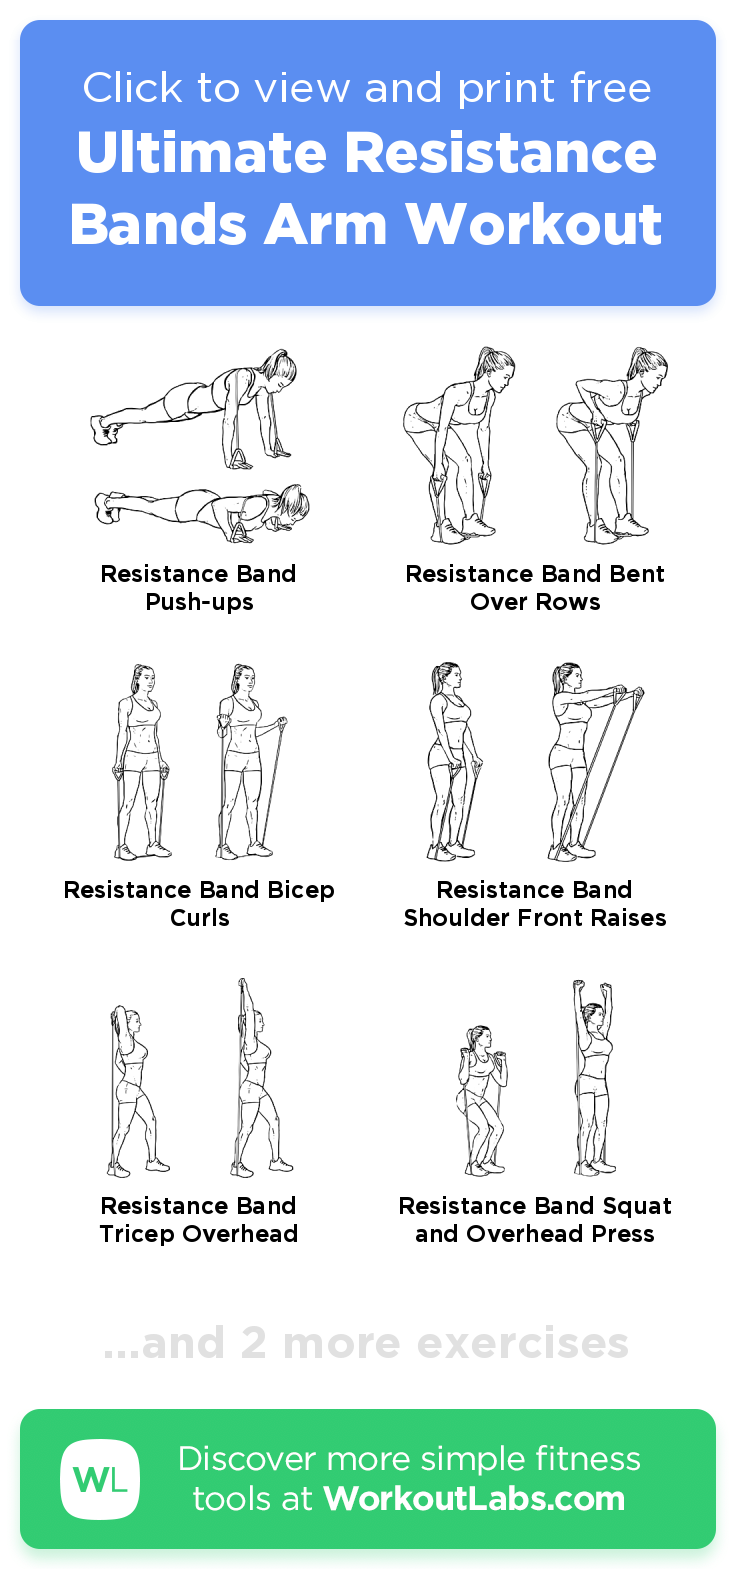 Ultimate Resistance Bands Arm Workout – click to view and print this illustrated exercise plan created with #WorkoutLabsFit #beginnerarmworkouts